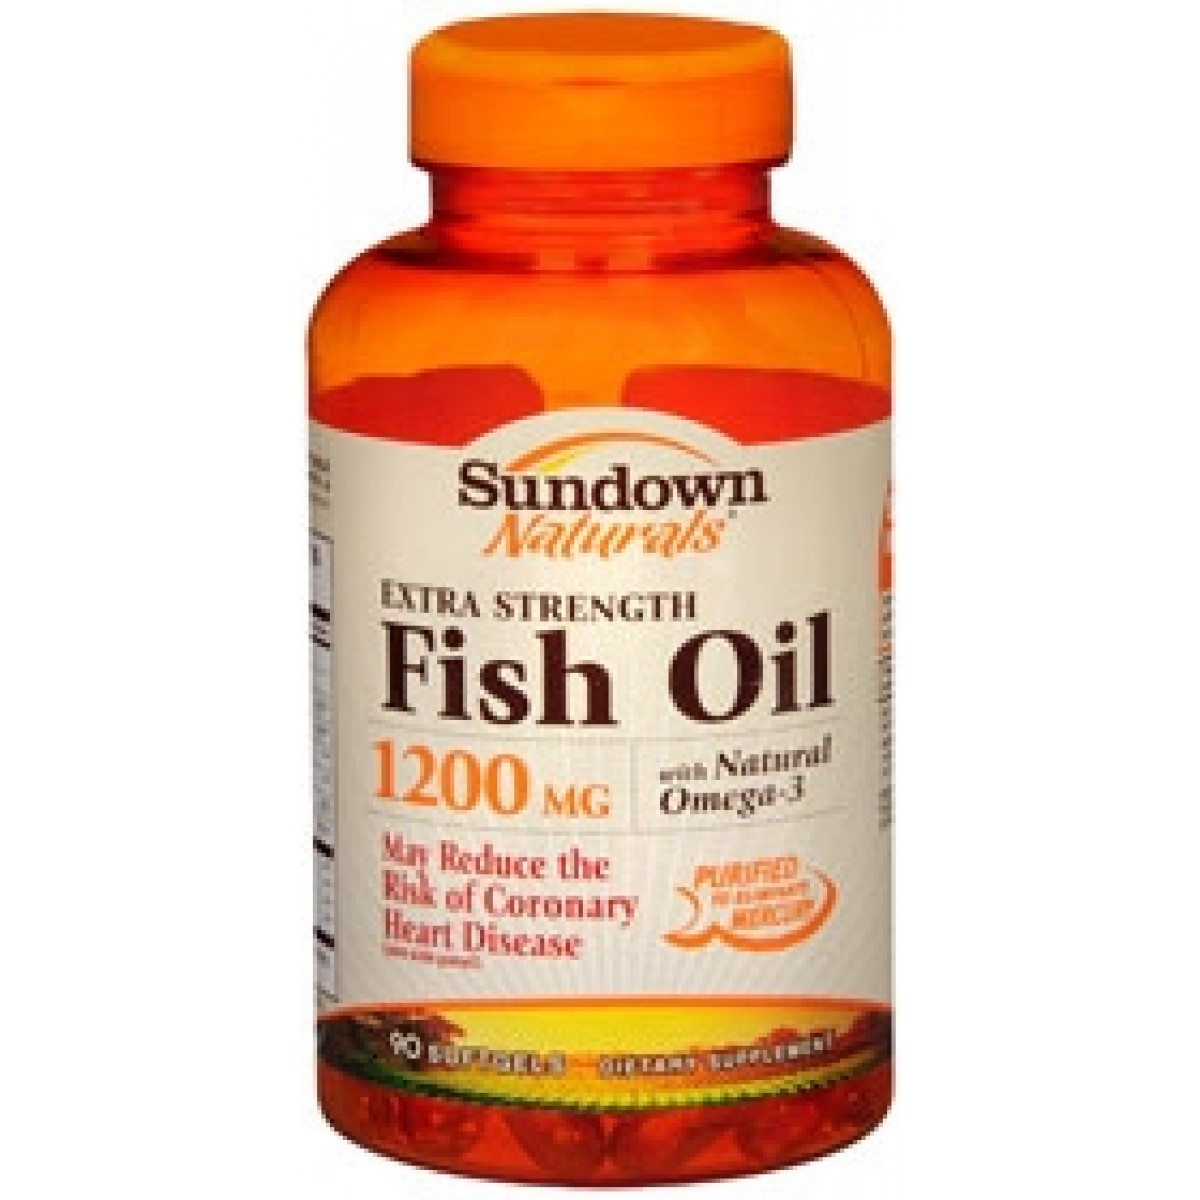 Sundown Naturals Extra Strength Fish Oil Reviews